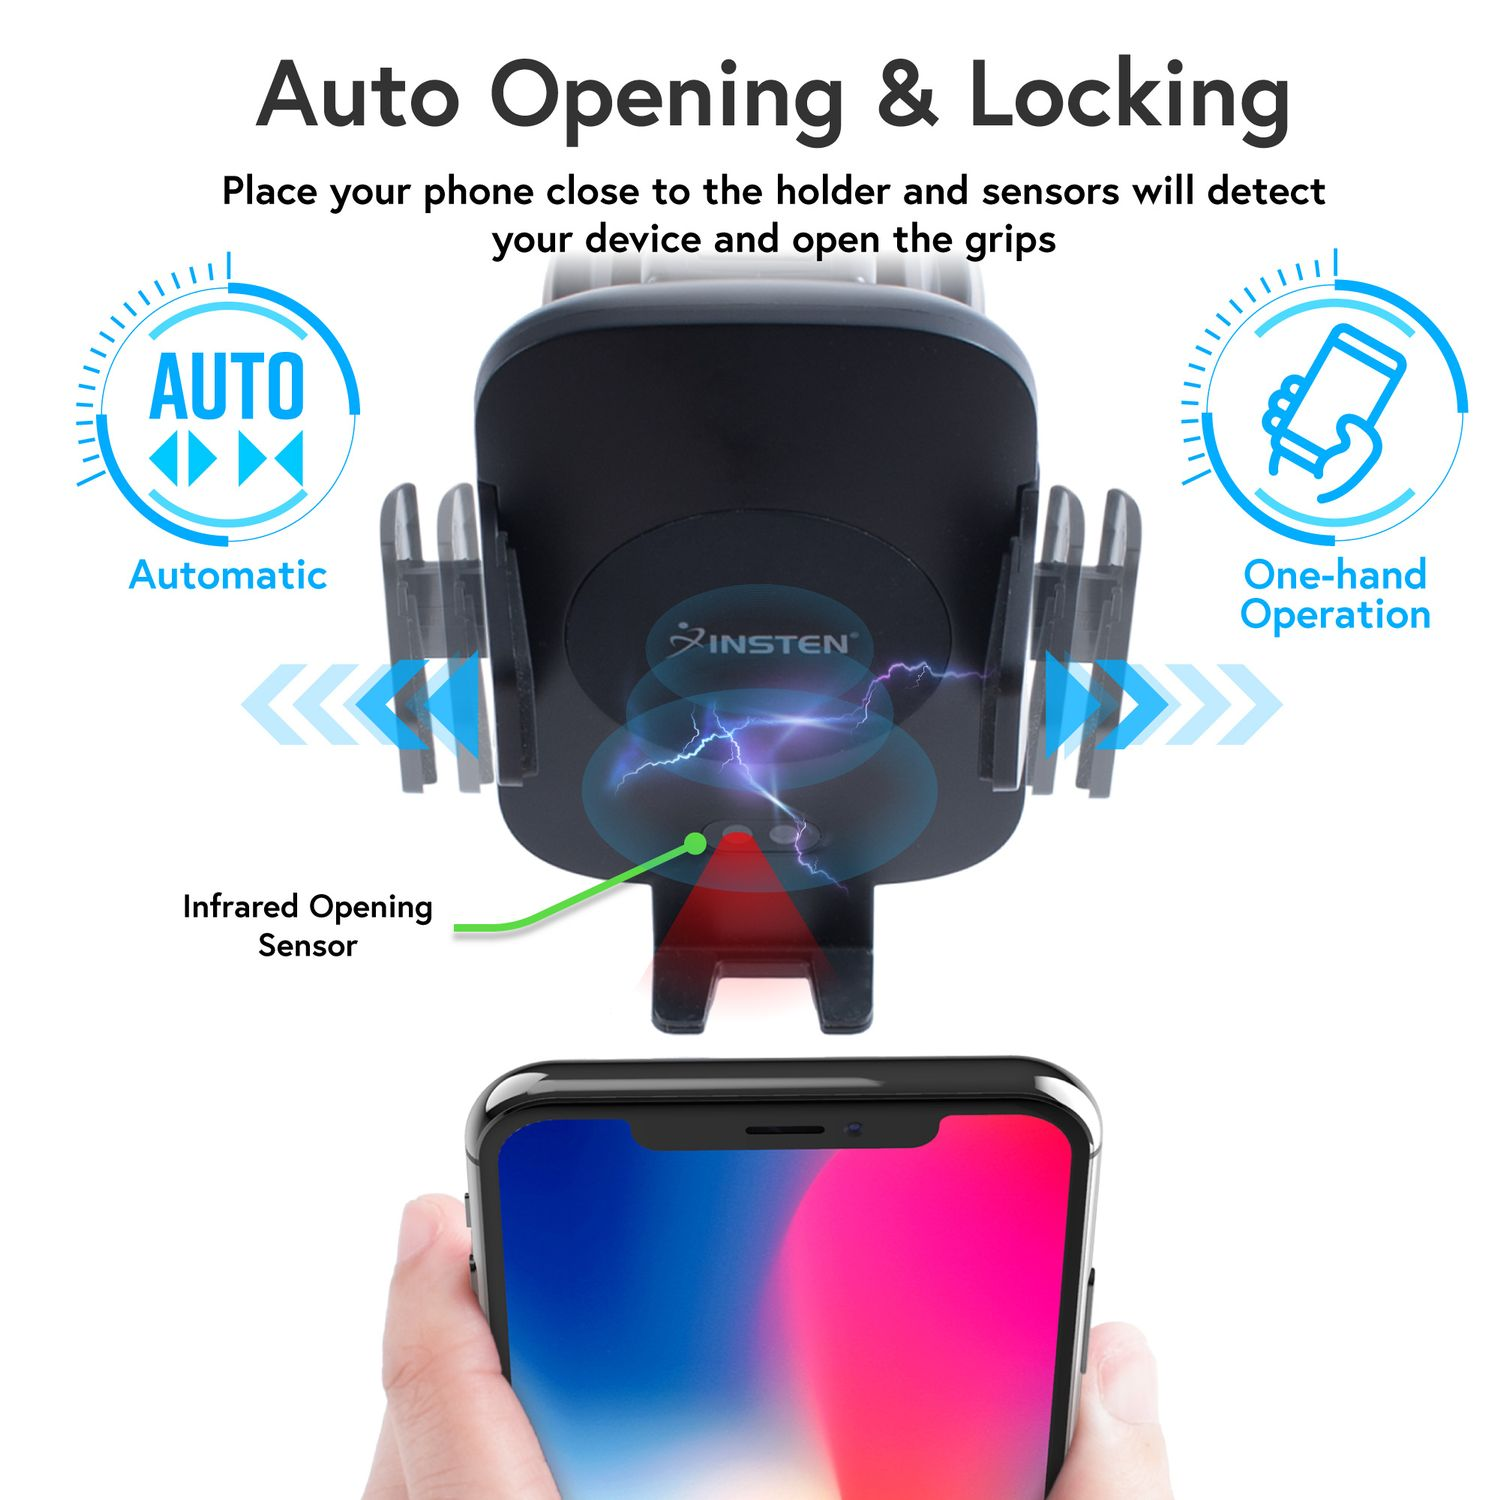 Wireless Charger Mount by Insten Motion Sensor Automatic Dashboard Window Suction & Air Vent Phone Holder Wireless Charging Pad Car Mount for iPhone X 8 Plus Samsung S9 S9+ (Free QC 3.0 Car Charger) - image 4 of 5